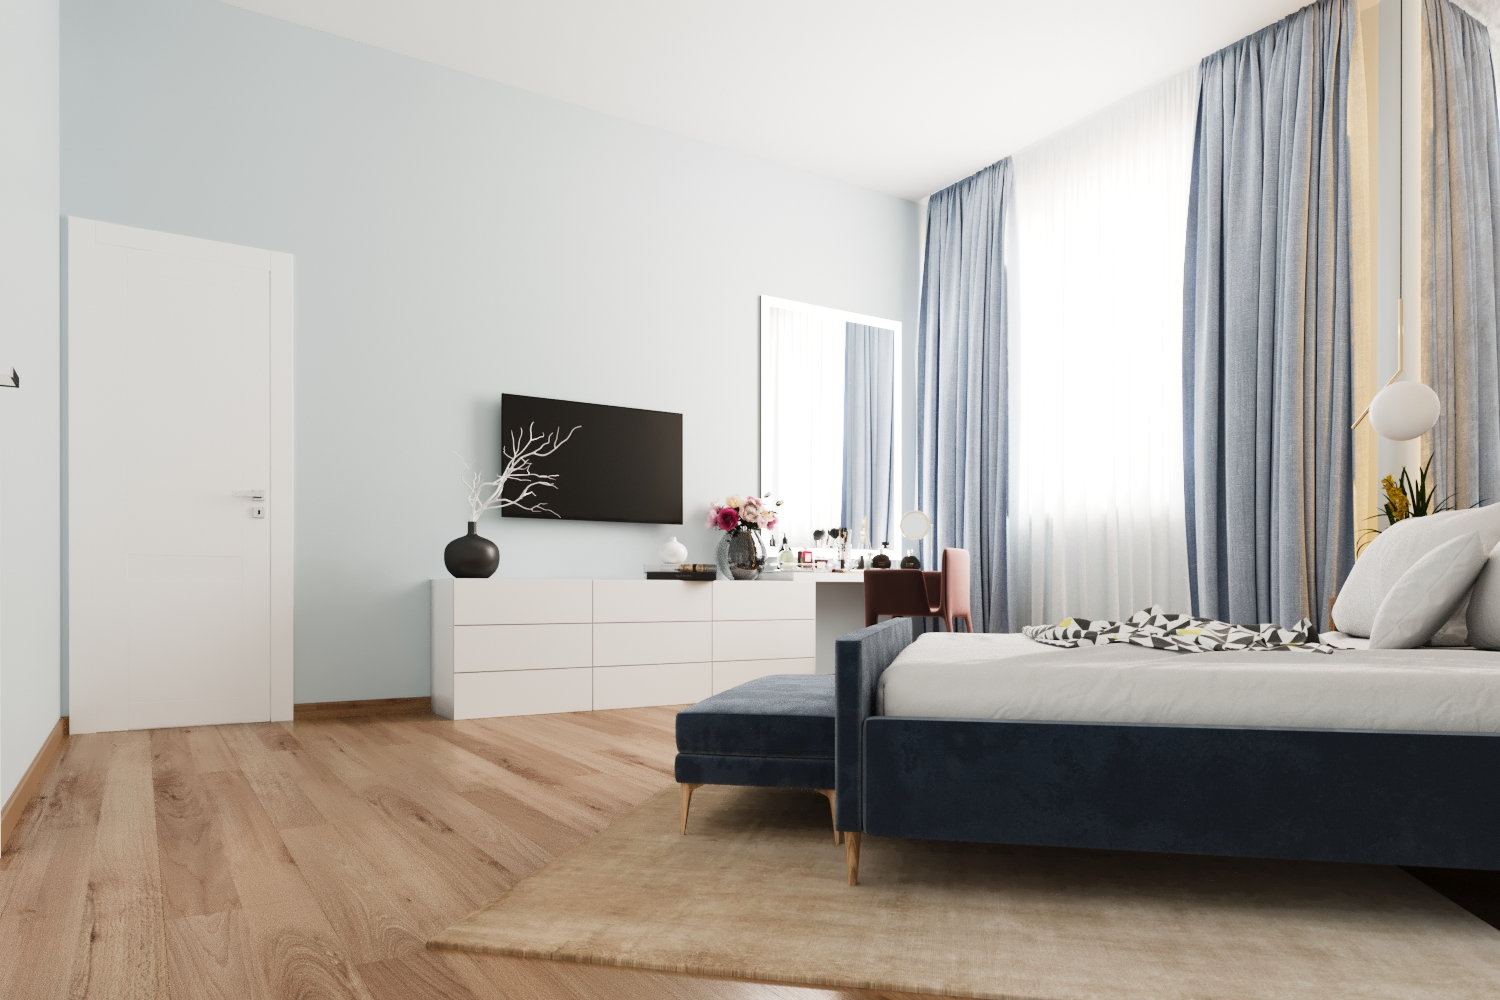 Bedroom interior design Marbella